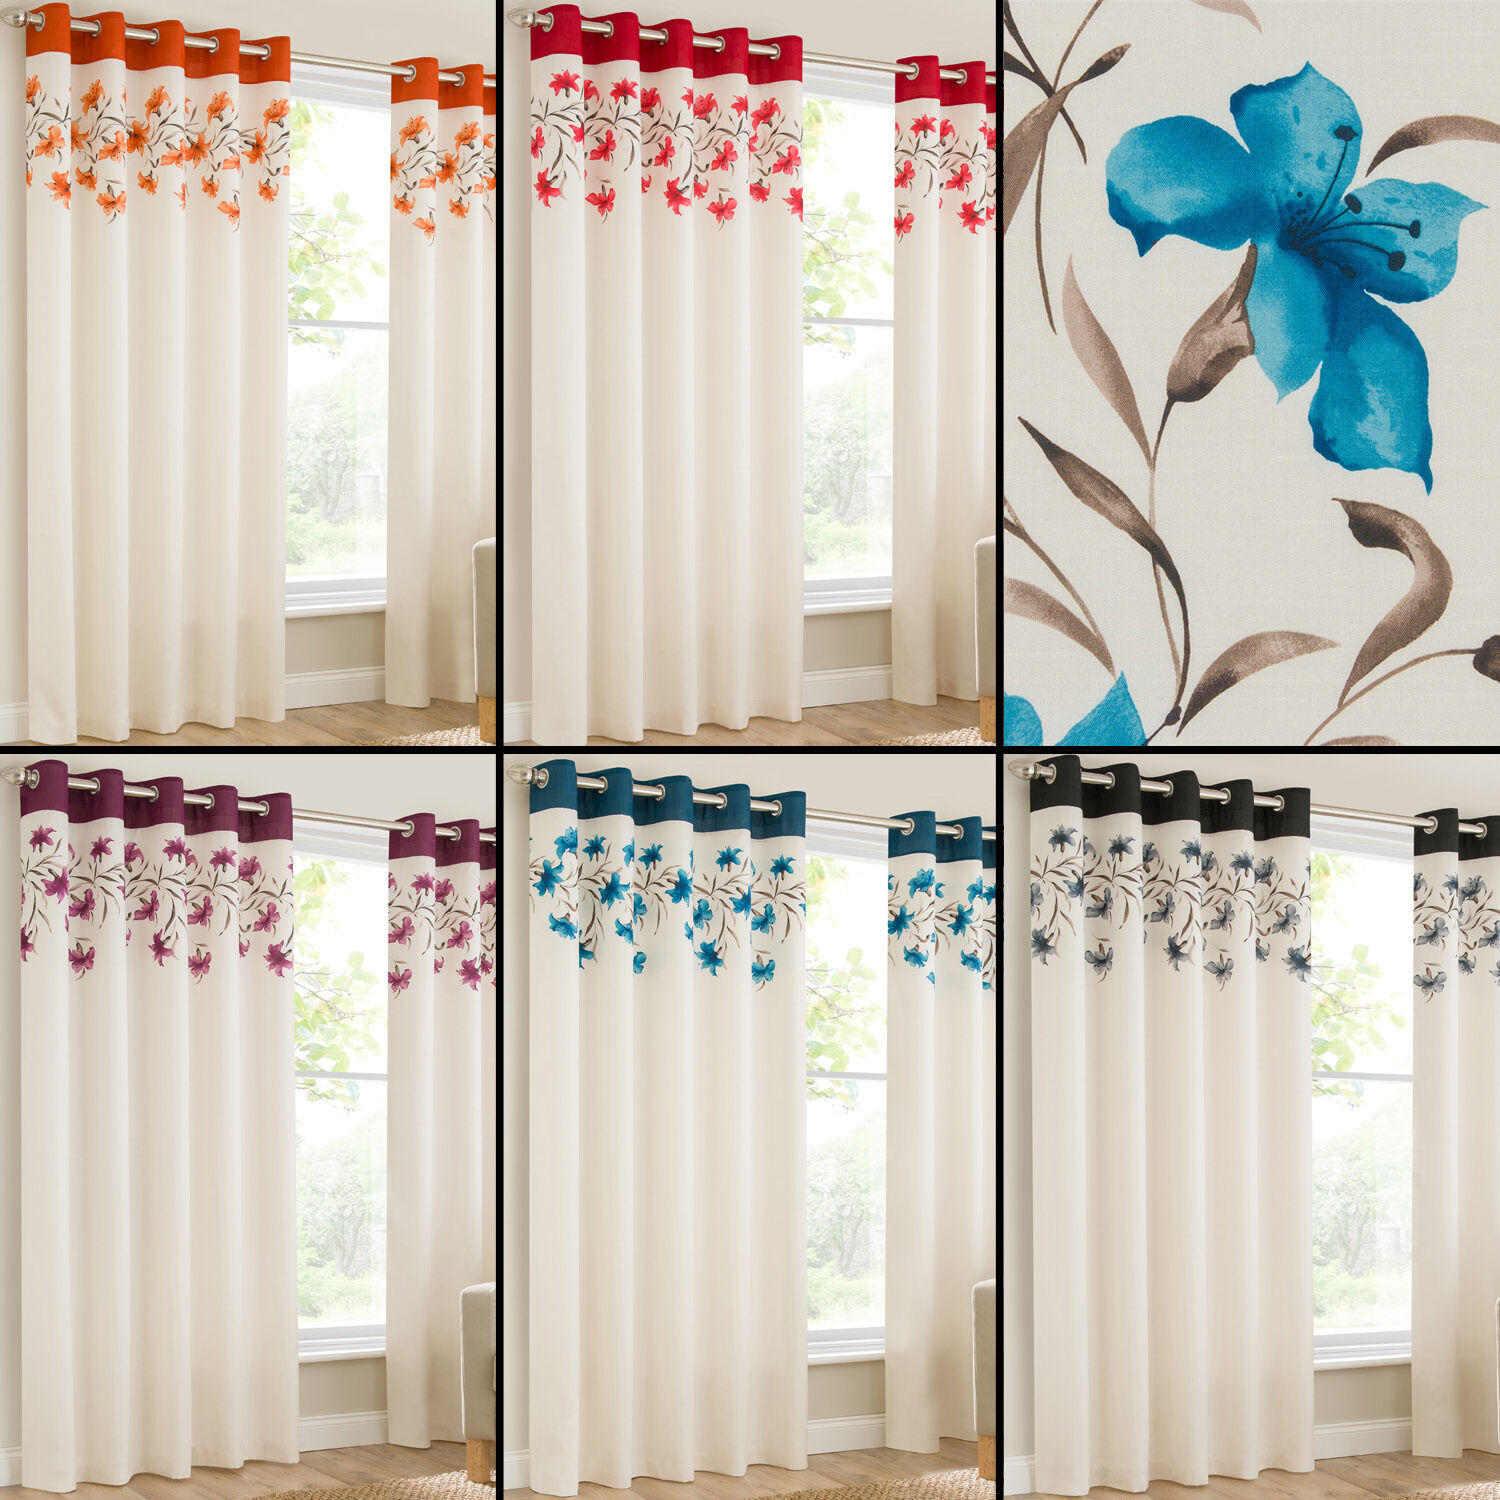 Lily Pair Ring Top Eyelet Fully Lined Ready Made Curtains Red Black Cream Blue Eur 16 89